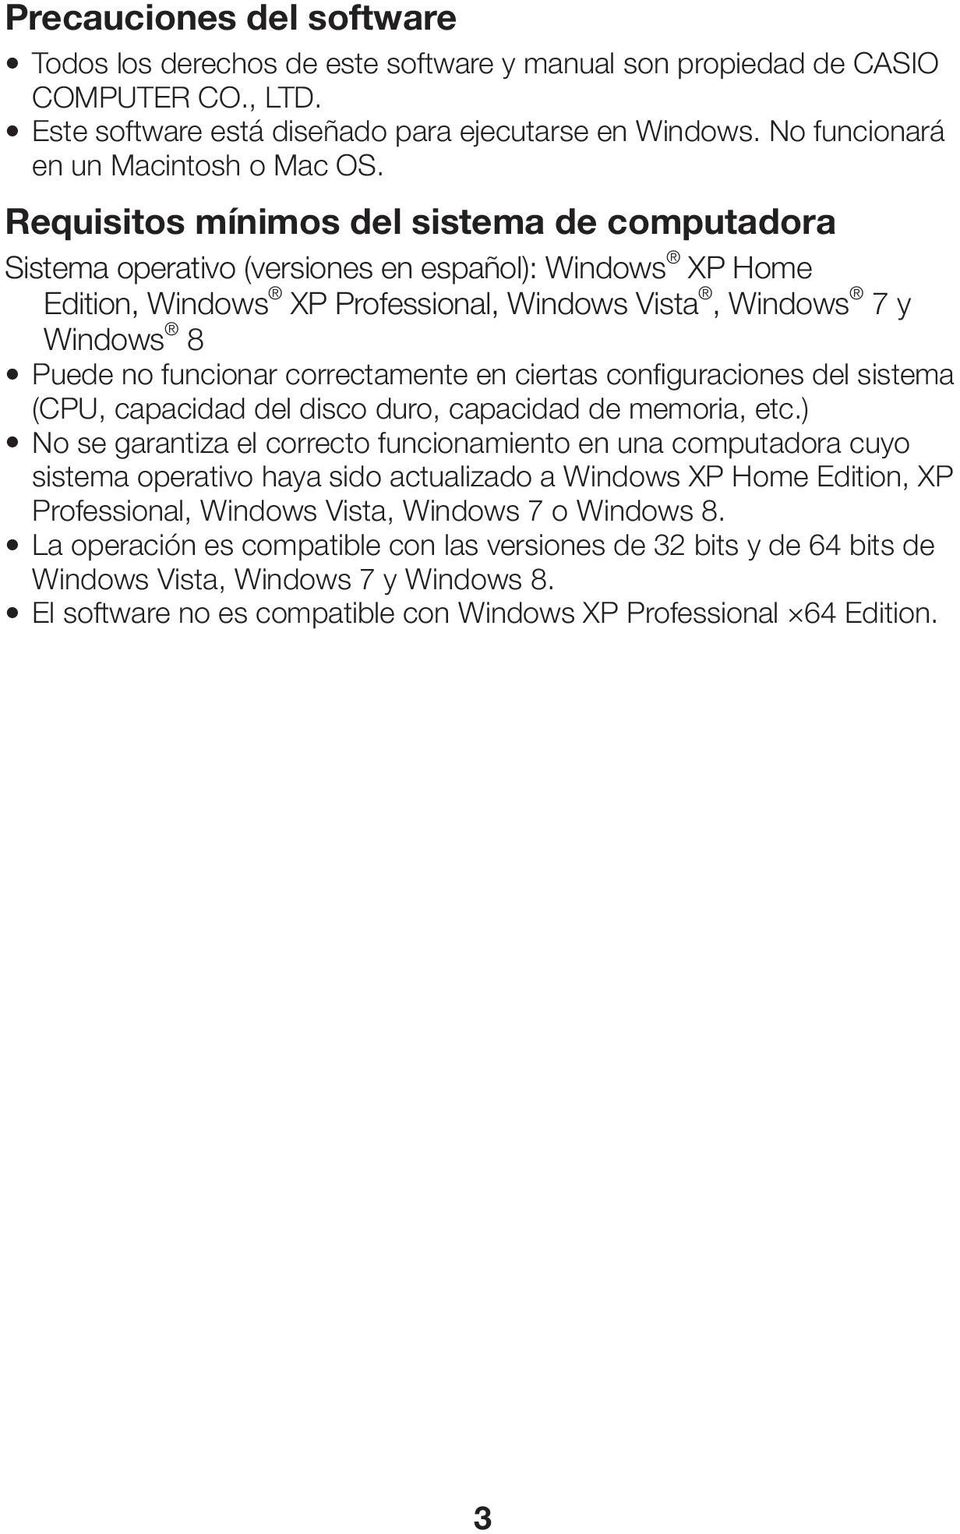 Requisitos mínimos del sistema de computadora Sistema operativo (versiones en español): Windows XP Home Edition, Windows XP Professional, Windows Vista, Windows 7 y Windows 8 Puede no funcionar